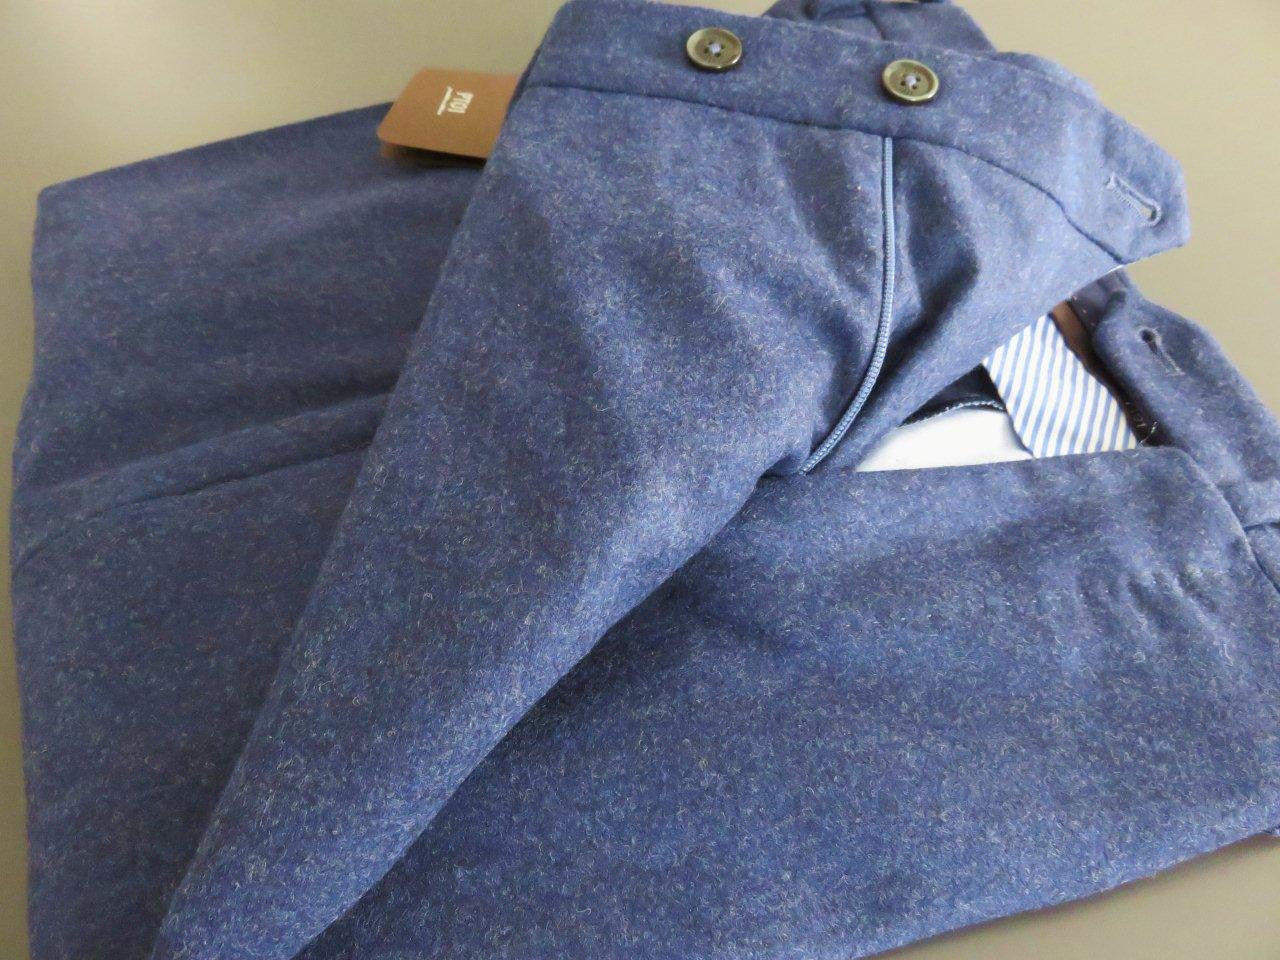 PT01 Pantaloni Torino - Business Wool Luxury